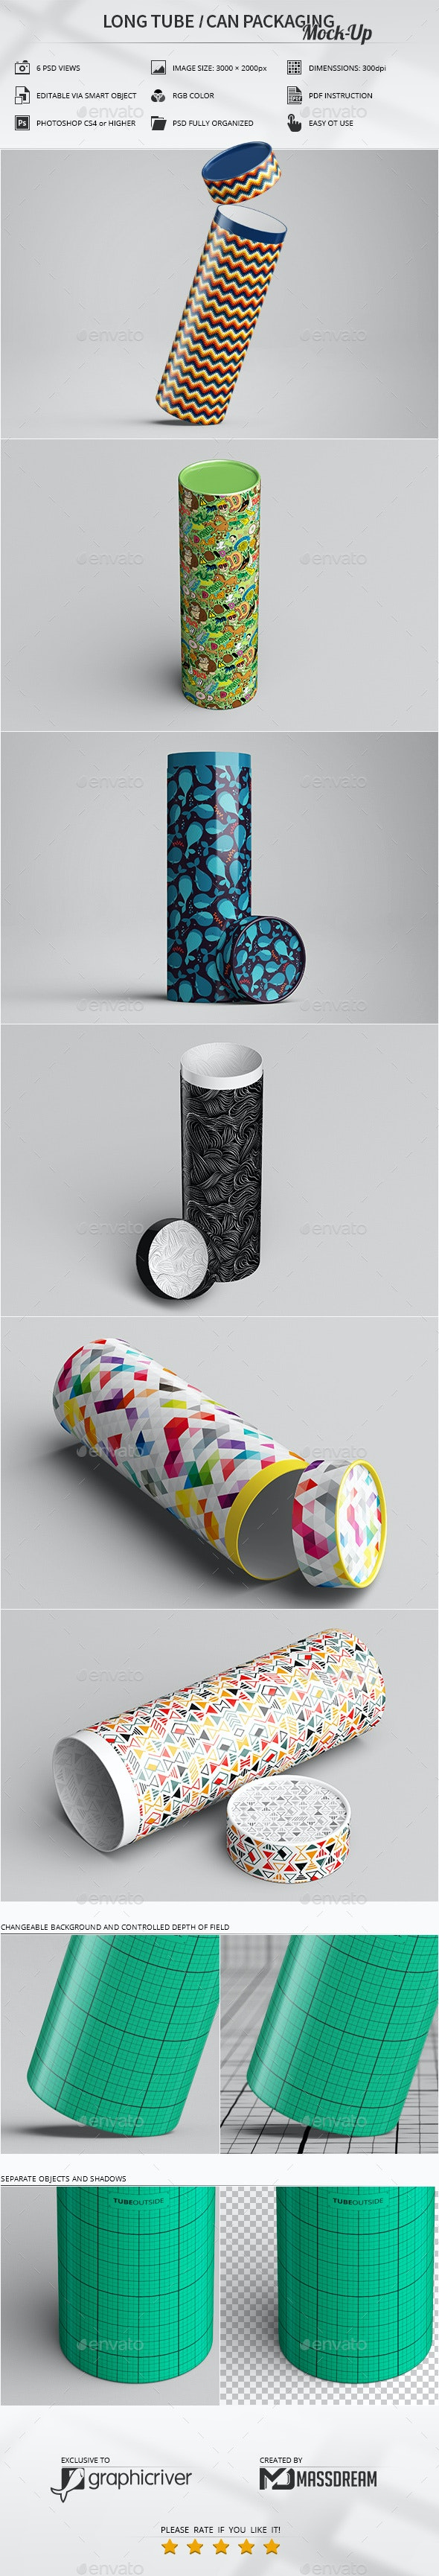 Long Tube / Can Packaging Mock-Up - Miscellaneous Packaging